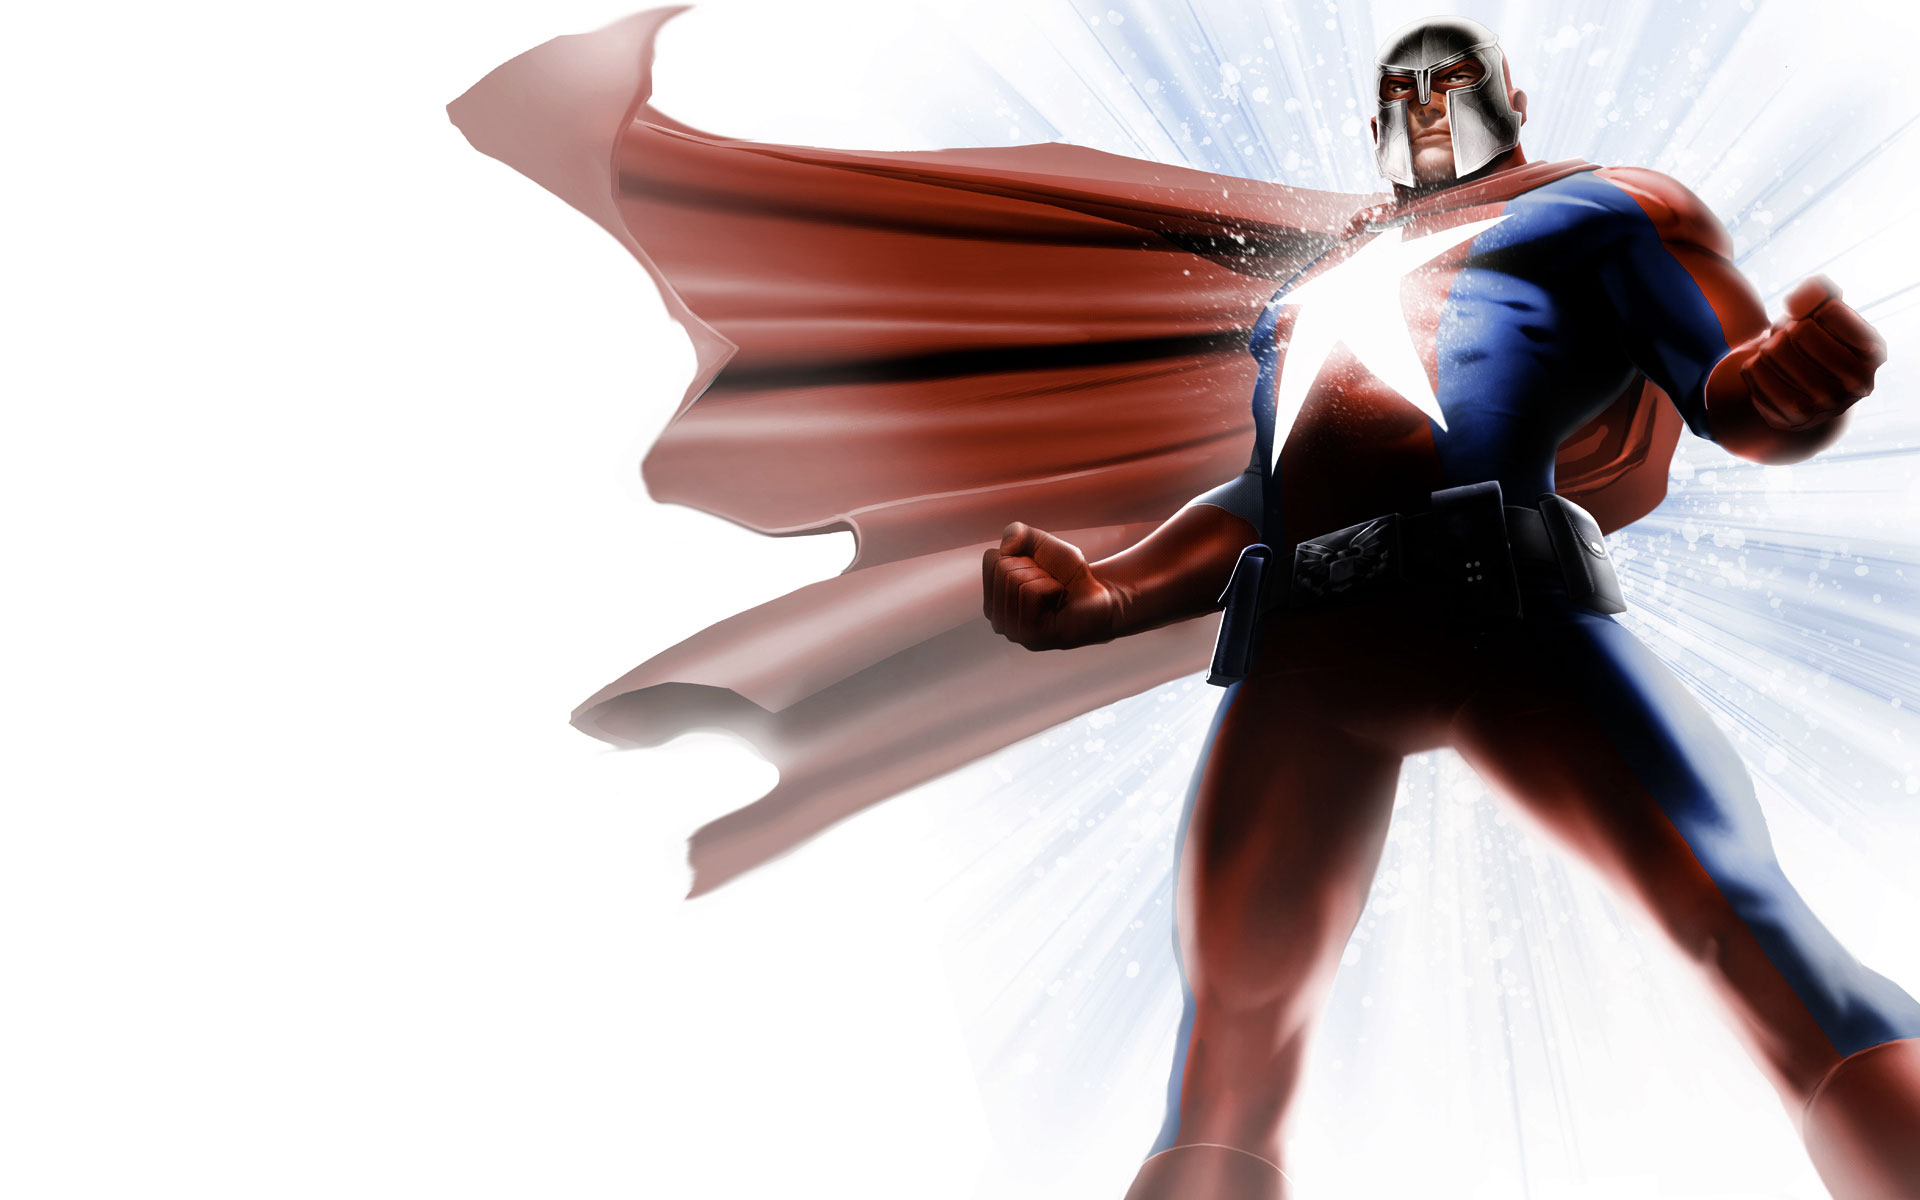 The secret City of Heroes server is now offline, but it's not clear